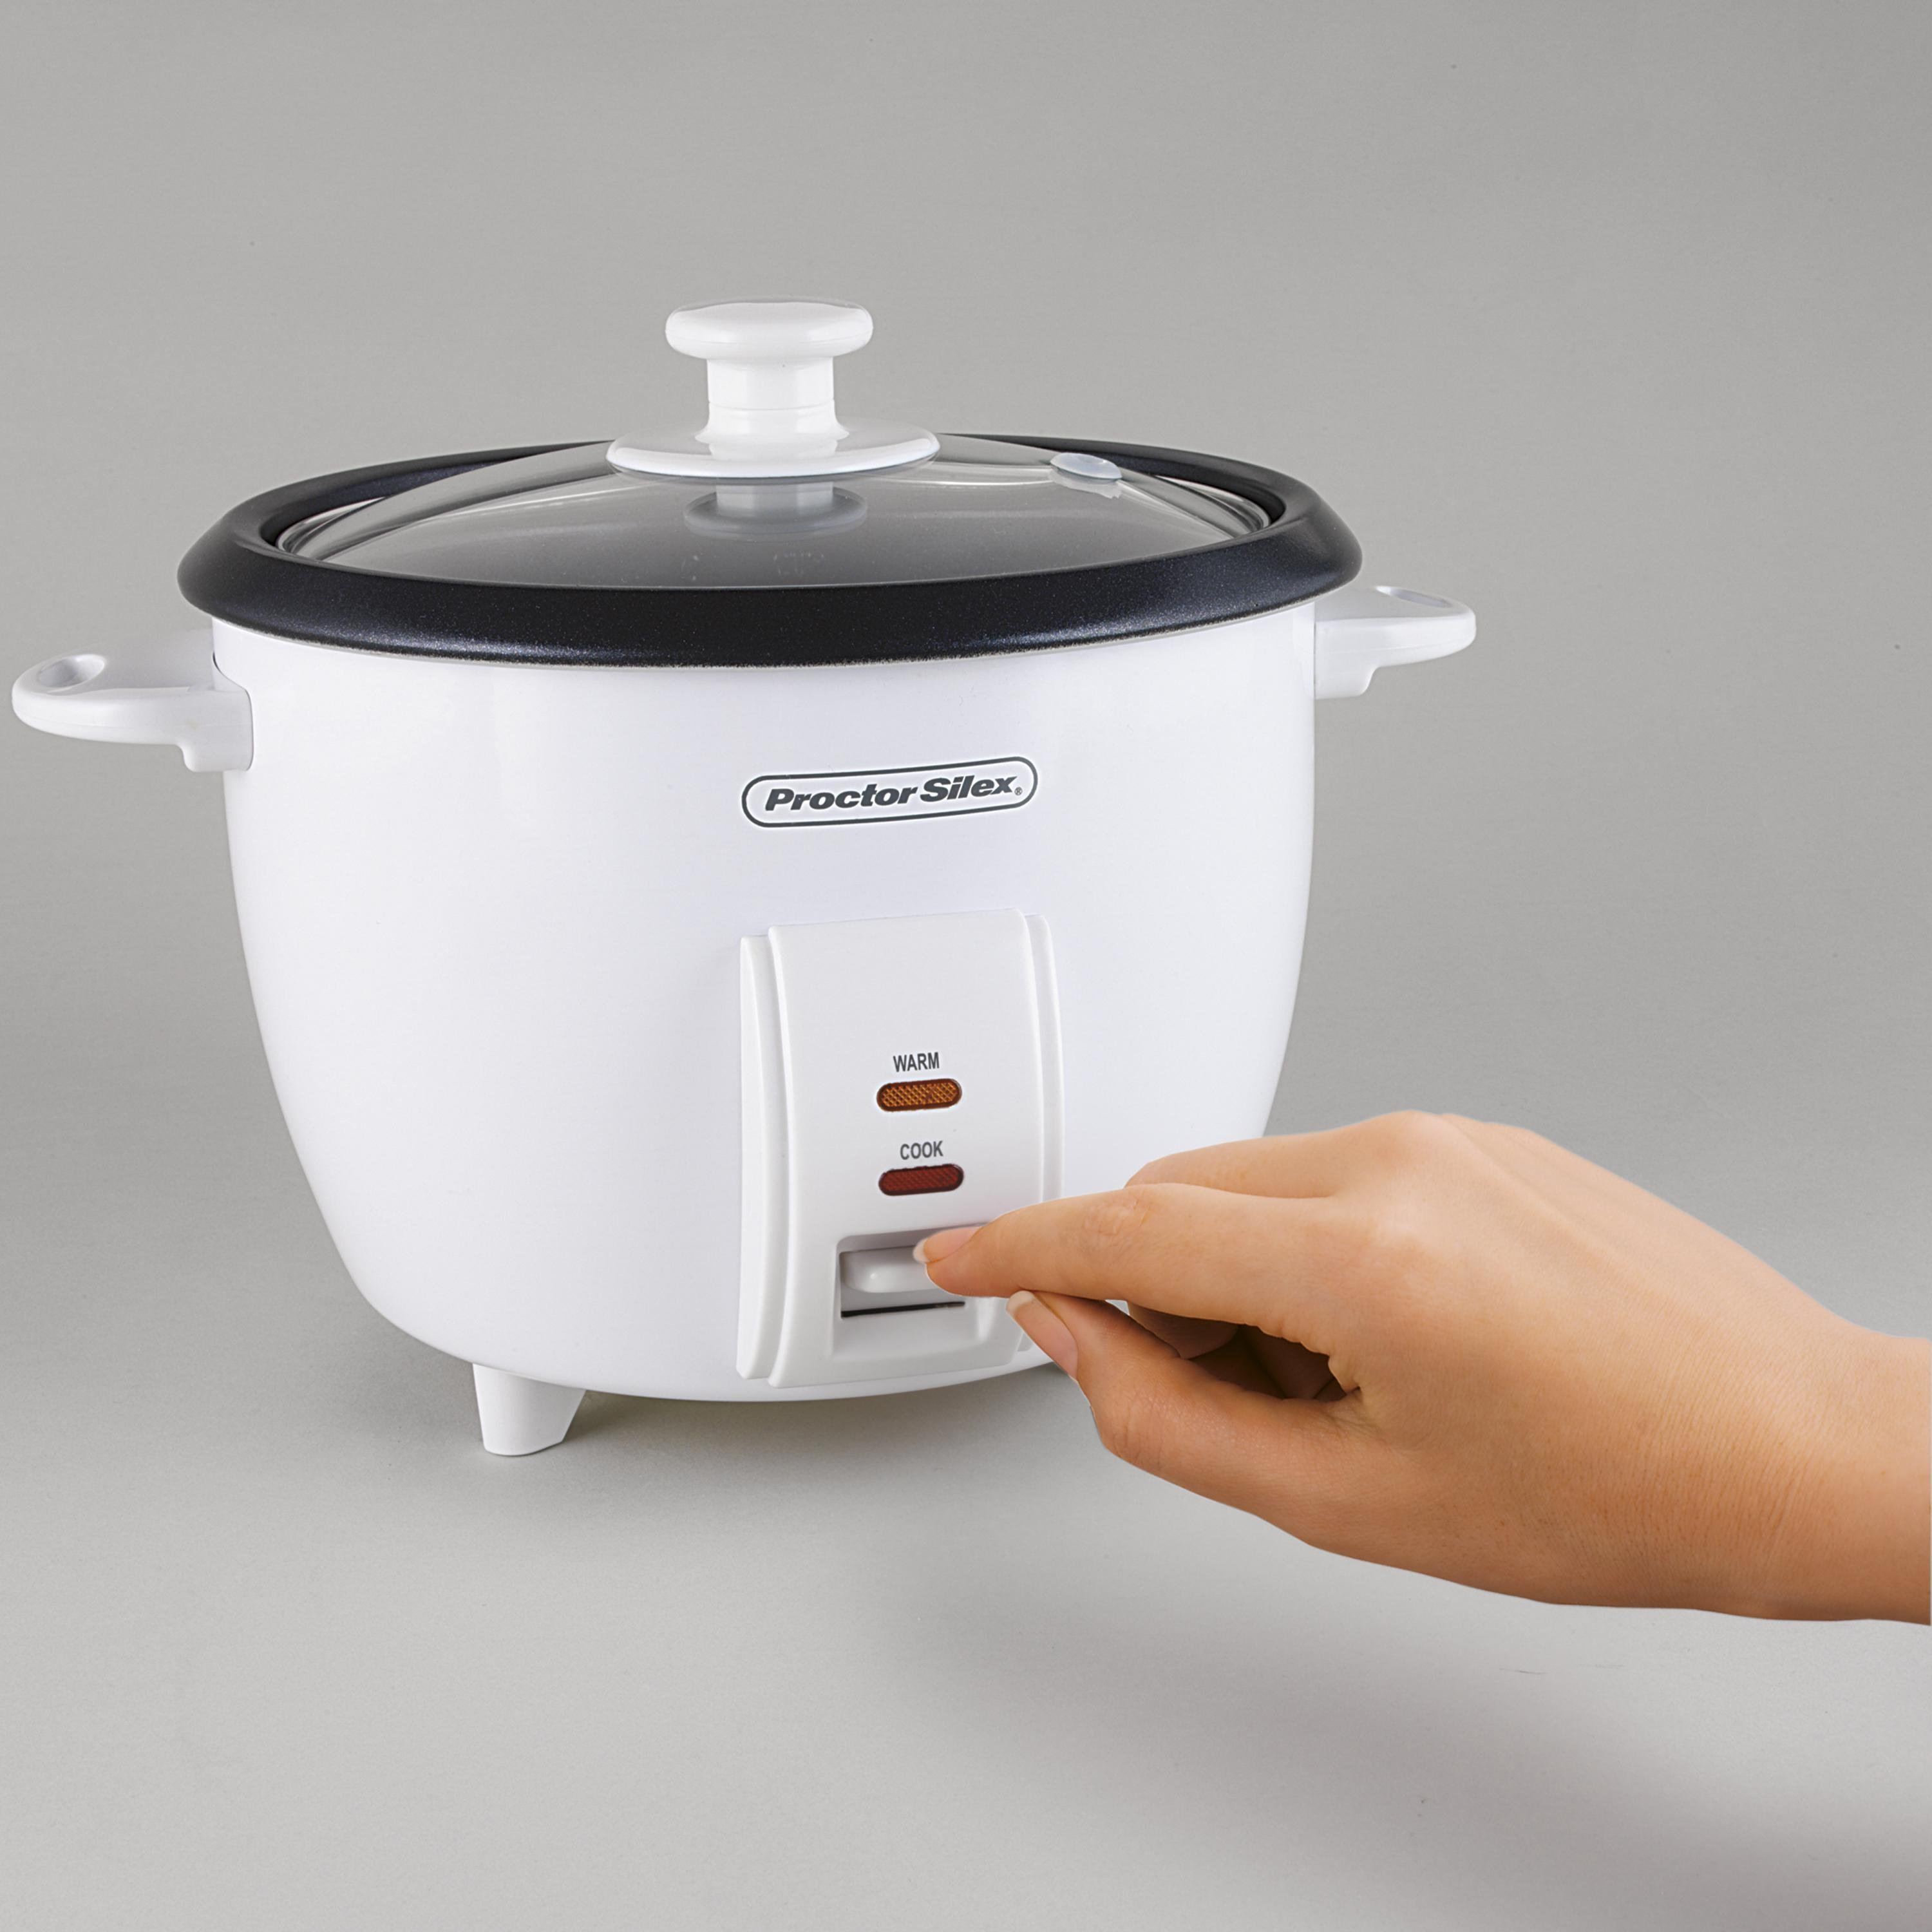 Amazon.com: Proctor Silex (37534NR) Rice Cooker 4 Cups